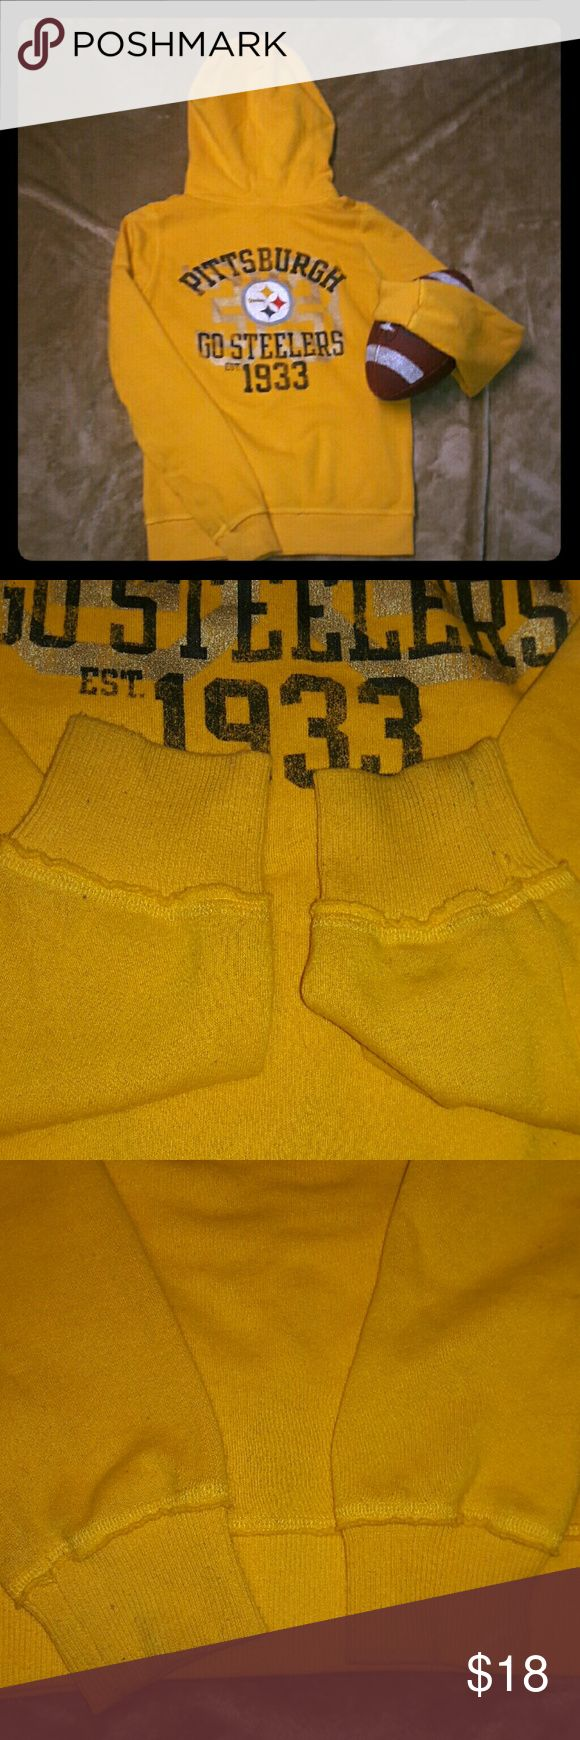 VS PINK Steelers Hoodie This classic black & yellow VS PINK Steelers hoodie is a size small. Their are some fuzzies along the bottom and shoulders, throughout the hoodie itself. I took pictures of the front and back sides of the bottom sleeves to see discoloration from wear. Very comfortable. Price reflects flaws. This has been in my closet for years. PINK Victoria's Secret Tops Sweatshirts & Hoodies